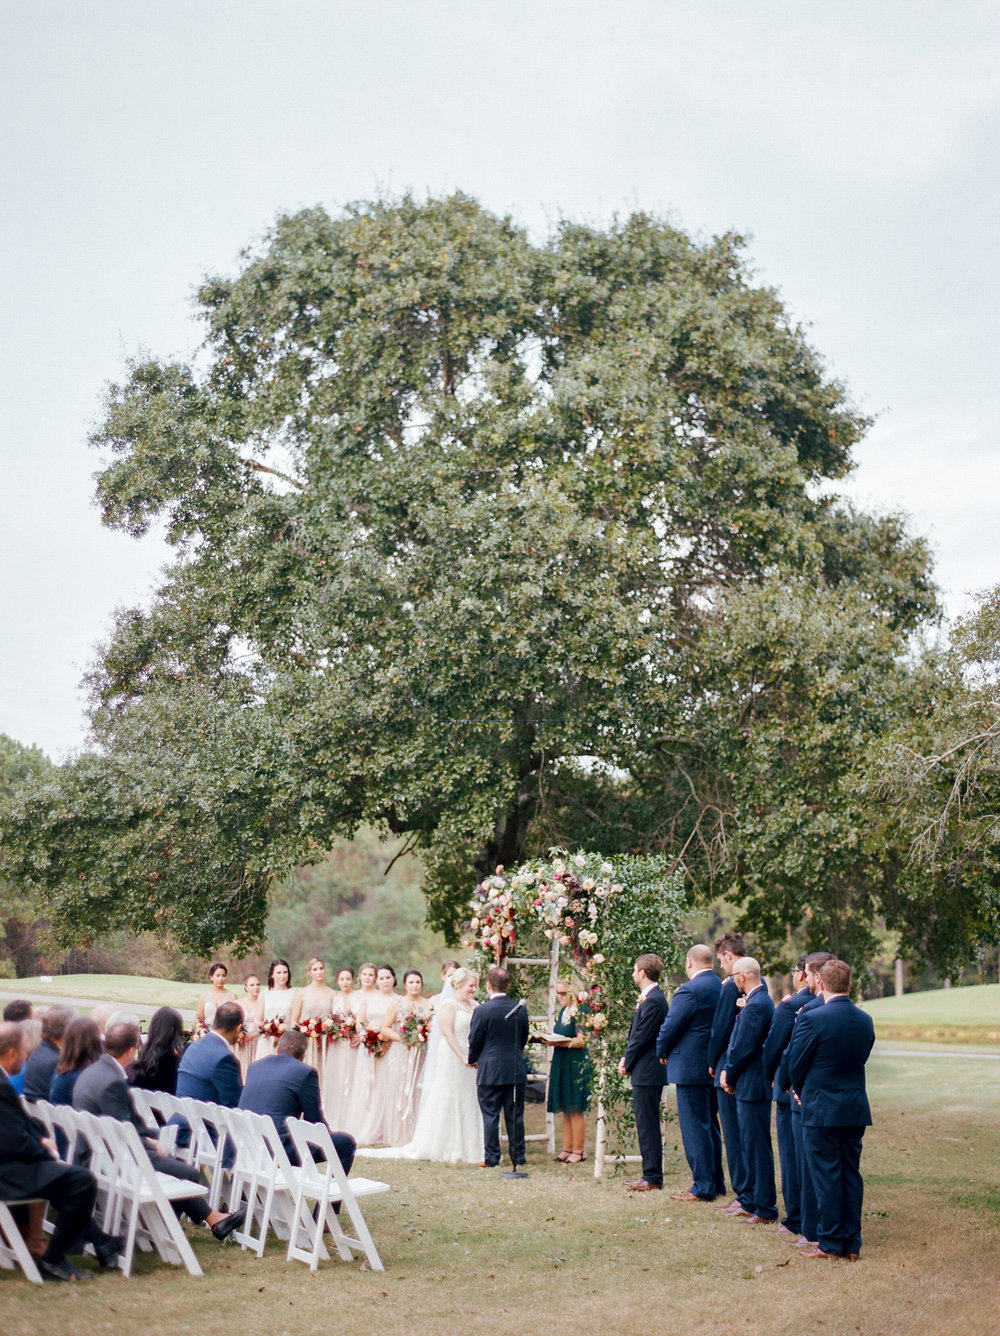 Houston-Wedding-Photographer-Fine-Art-Film-Destination-Style-Me-Pretty-Austin-Dallas-New-Orleans-Dana-Fernandez-Photography-The+Woodlands-Country-Club-18.jpg